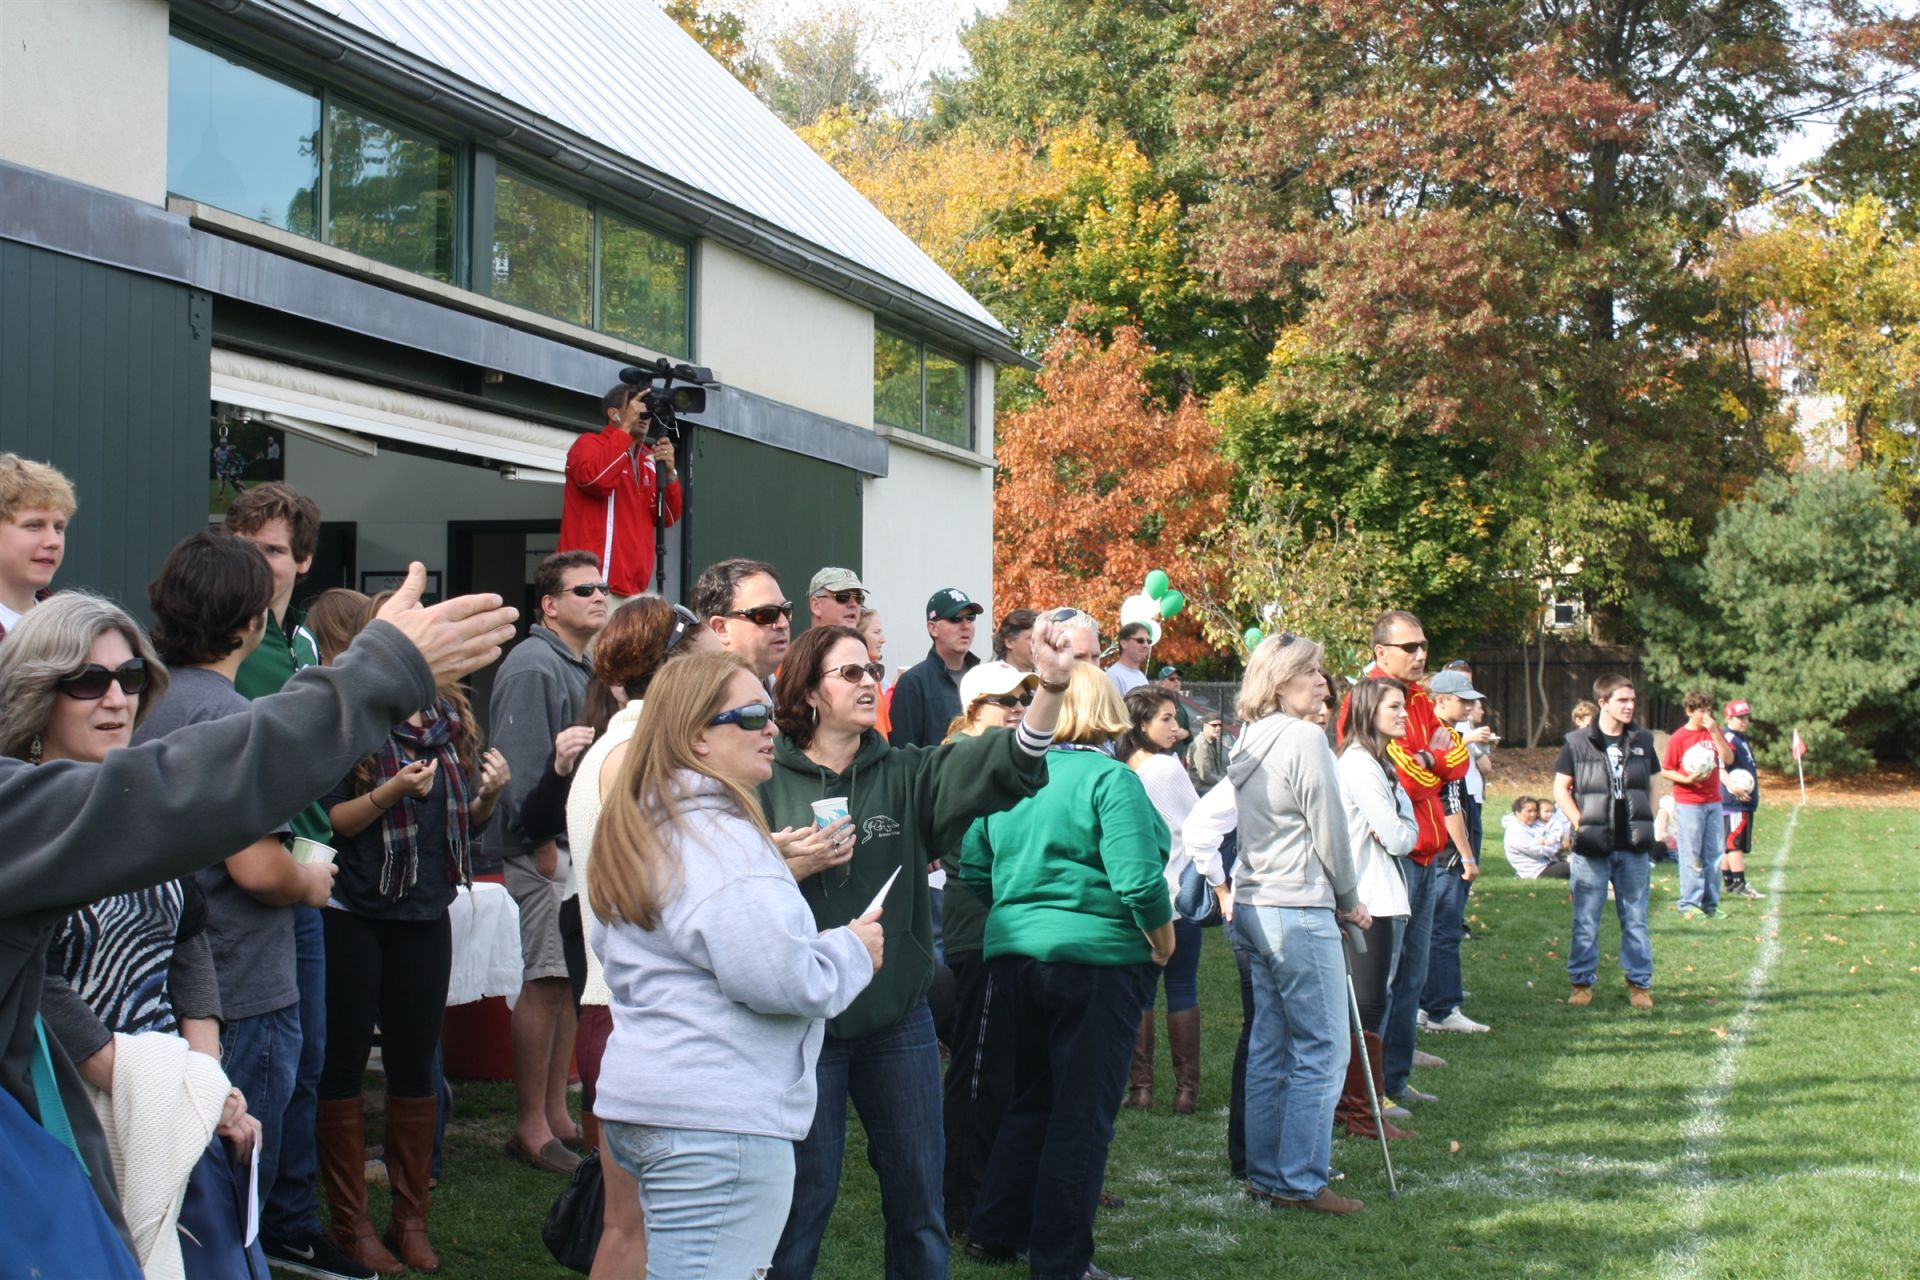 The Orr field house (in the background). A Homecoming crowd cheers on a soccer game at the Orr Field.